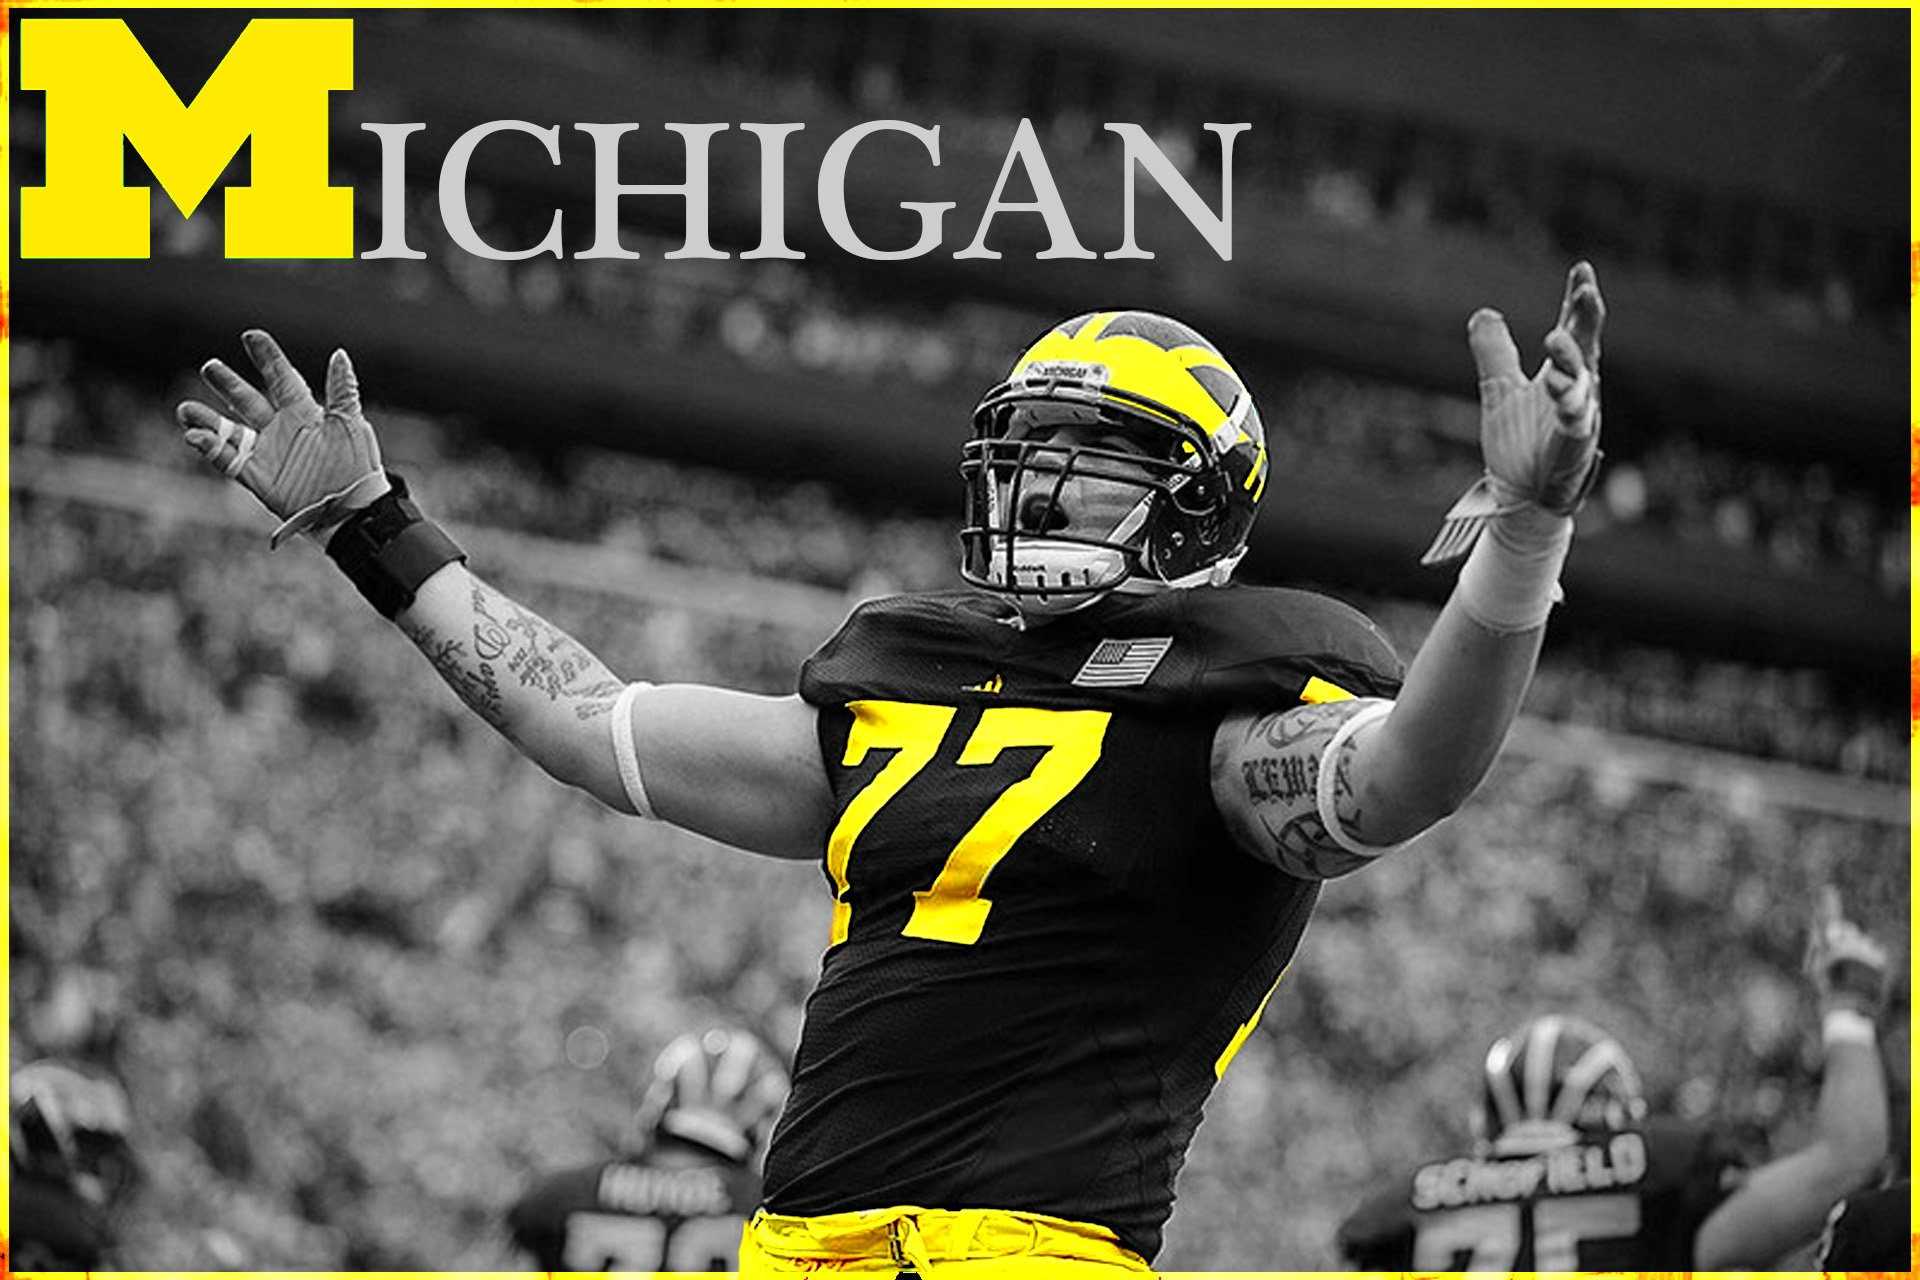 Michigan Football Wallpaper Screensavers - WallpaperSafari